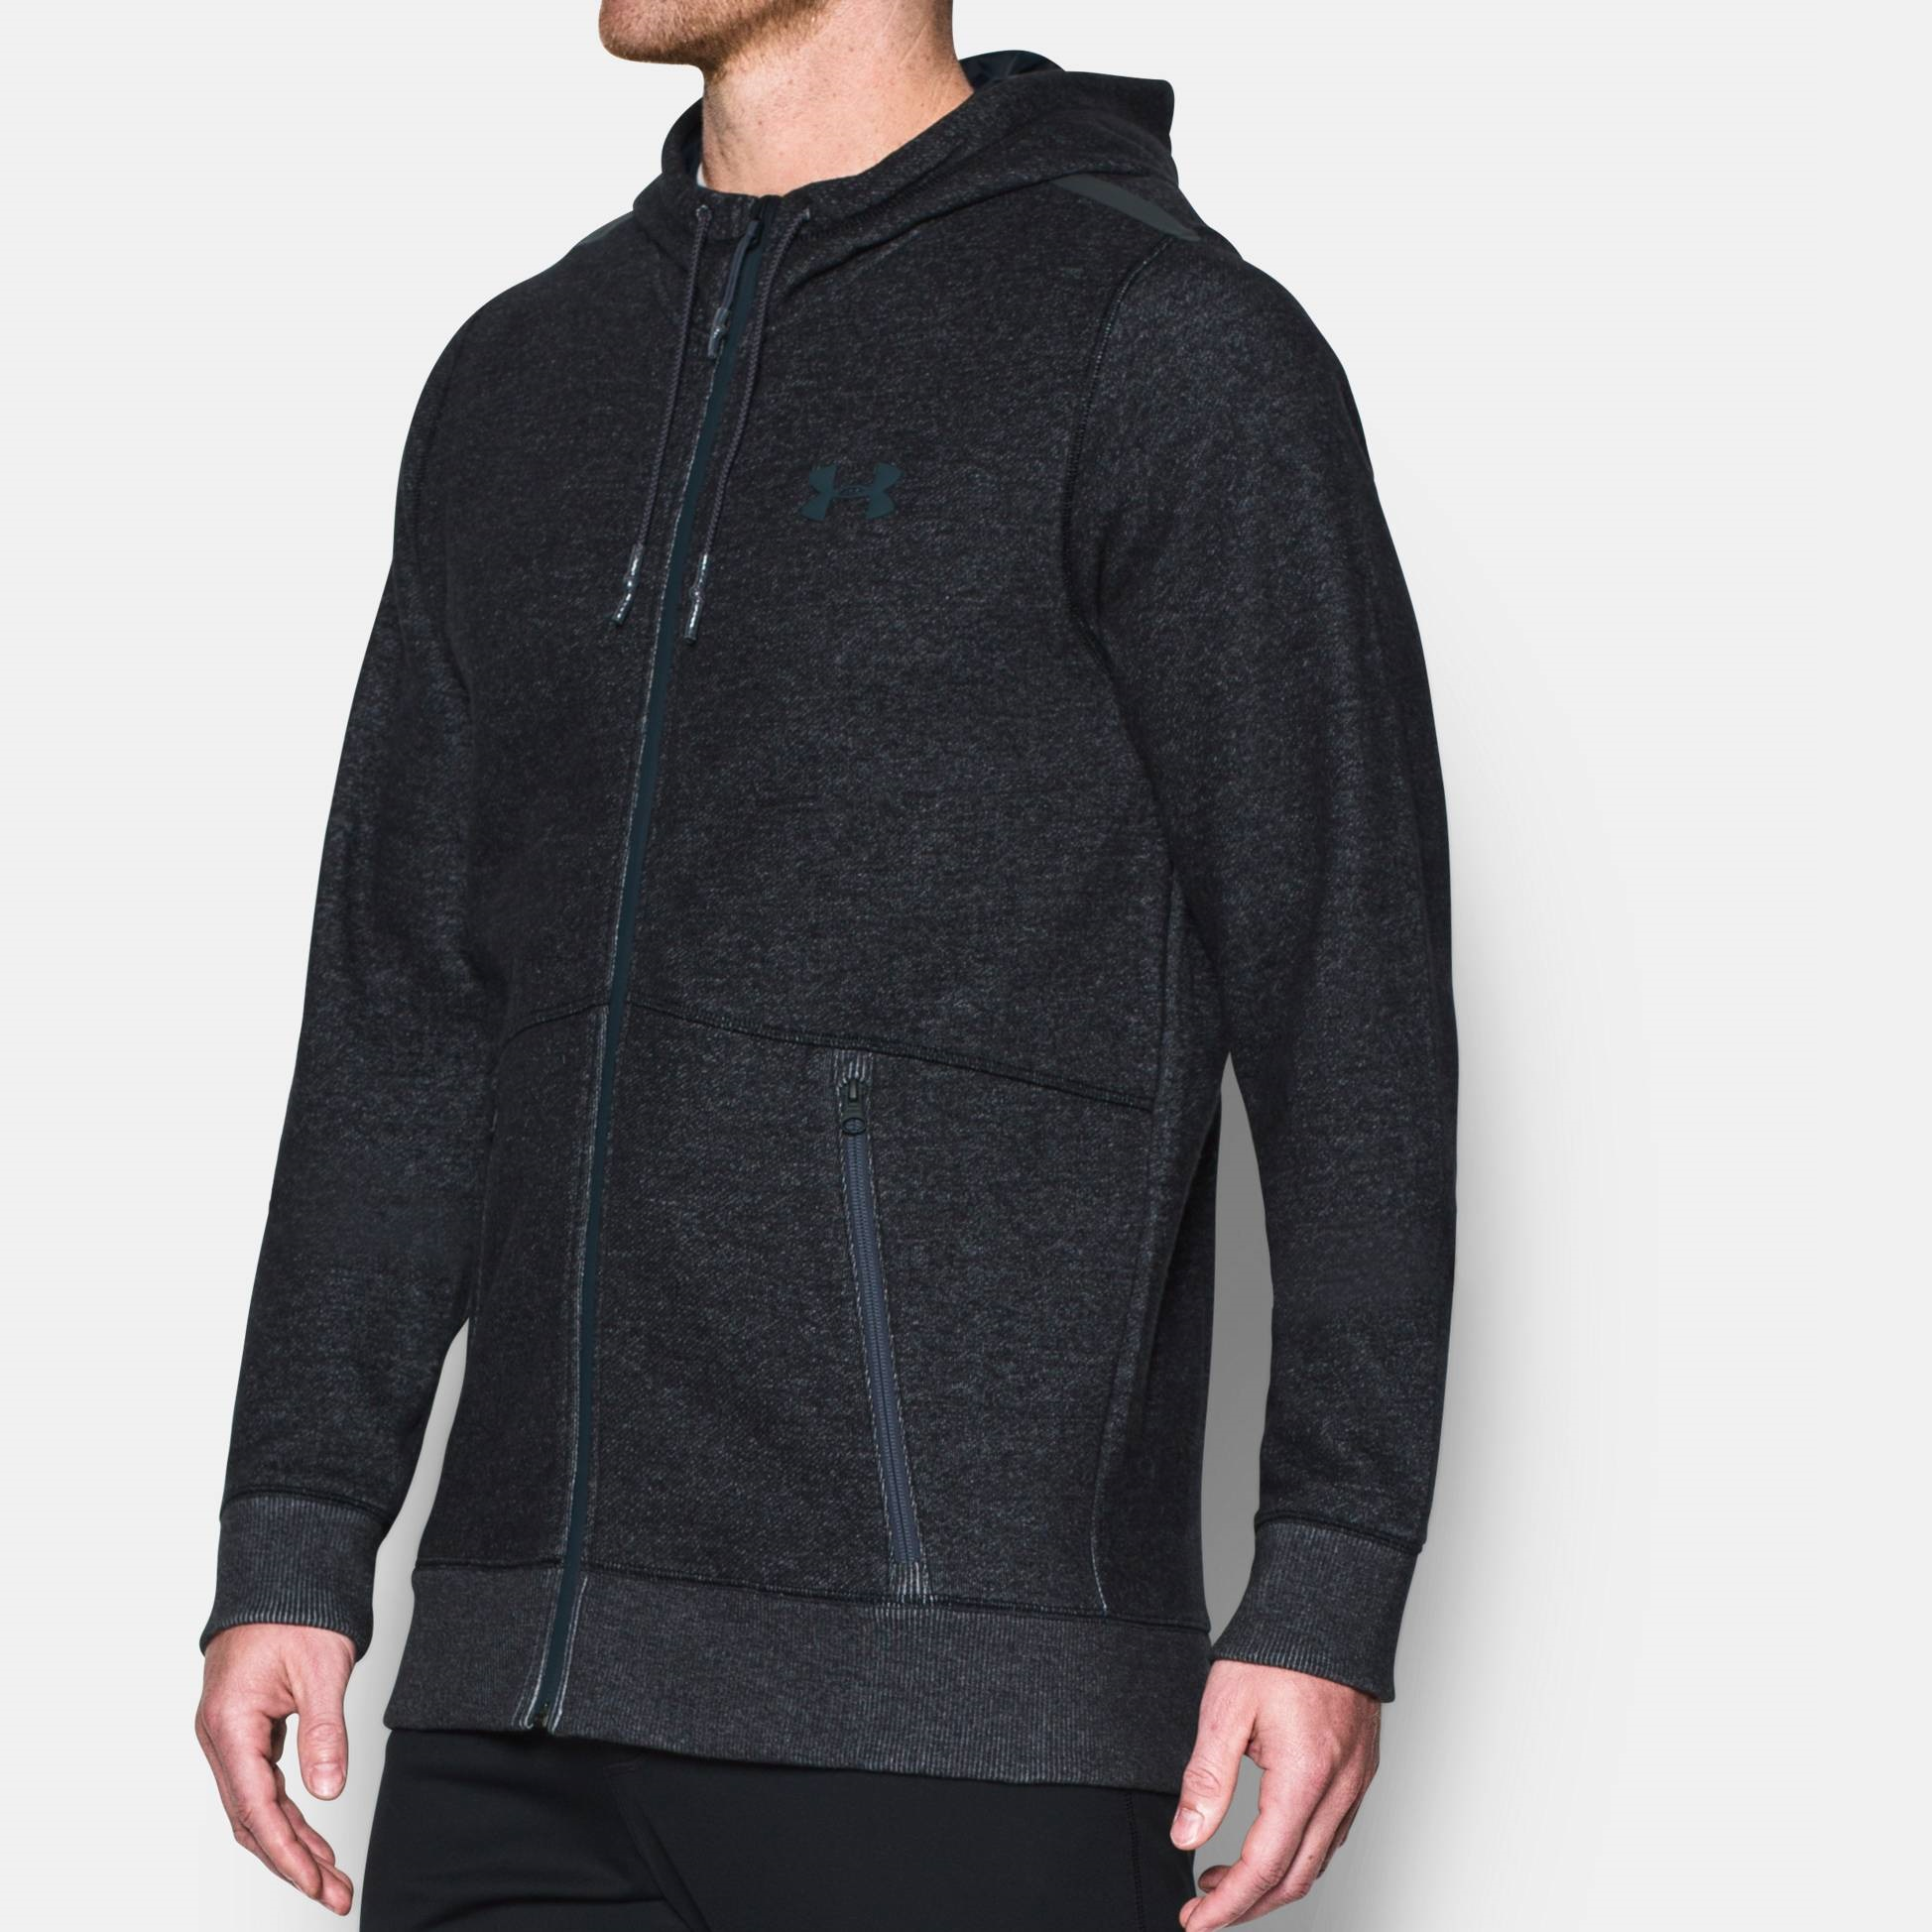 Under armour clothing online